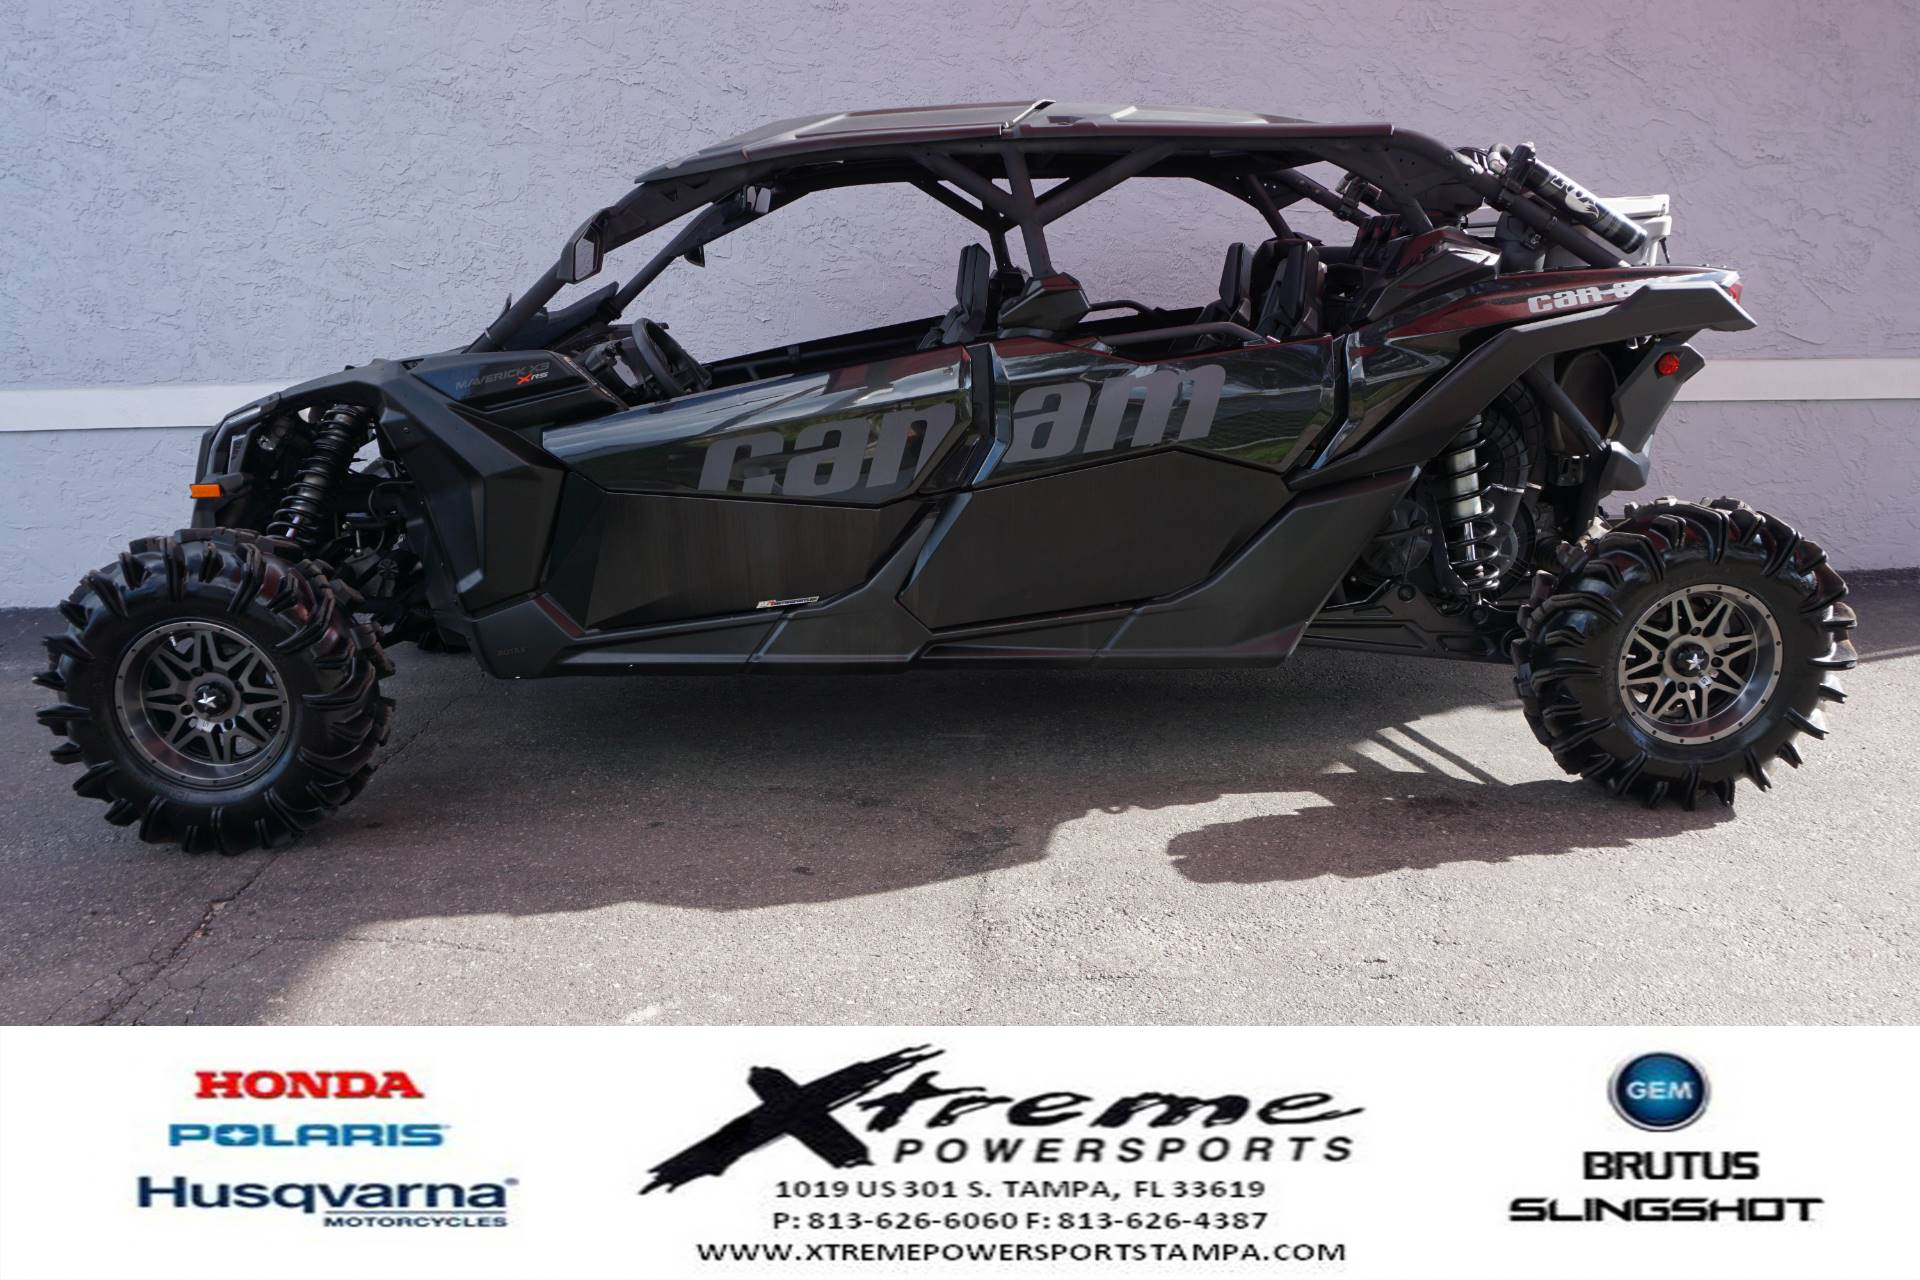 2017 Can-Am MAVERICK X3 TURBO MAX XRS in Tampa, Florida - Photo 1